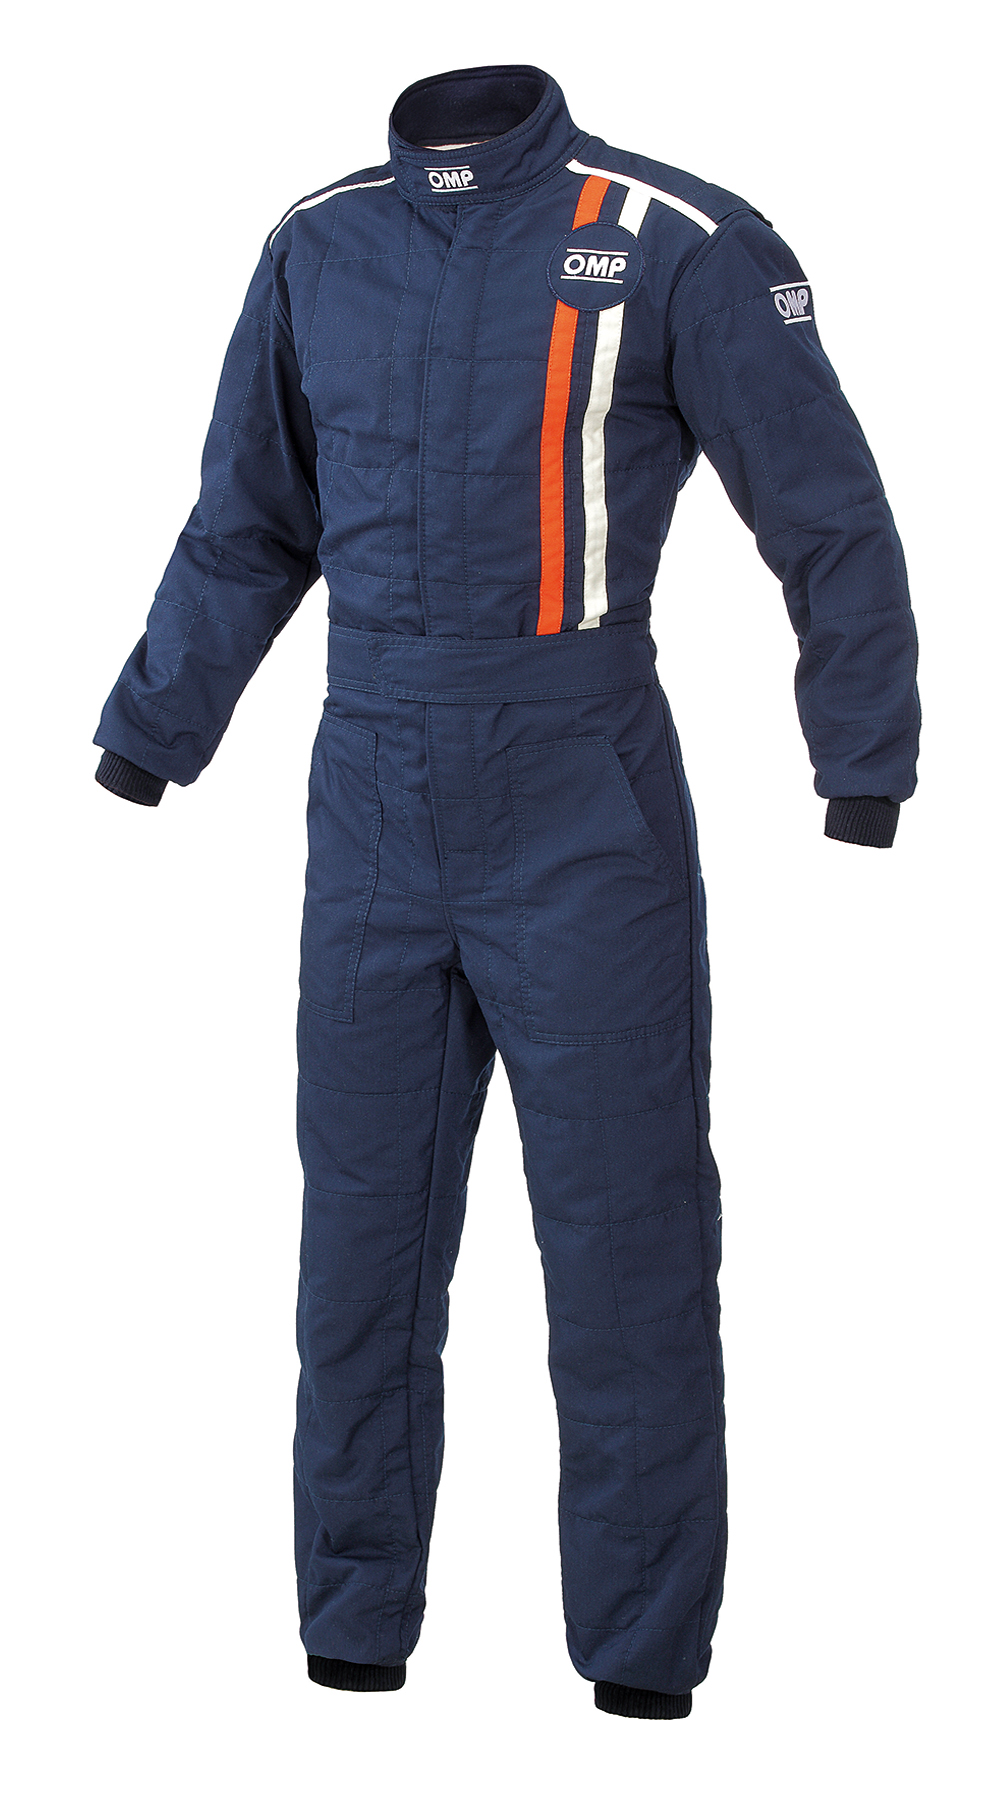 omp classic race suit fia approved retro overalls  layer historic race suit fia